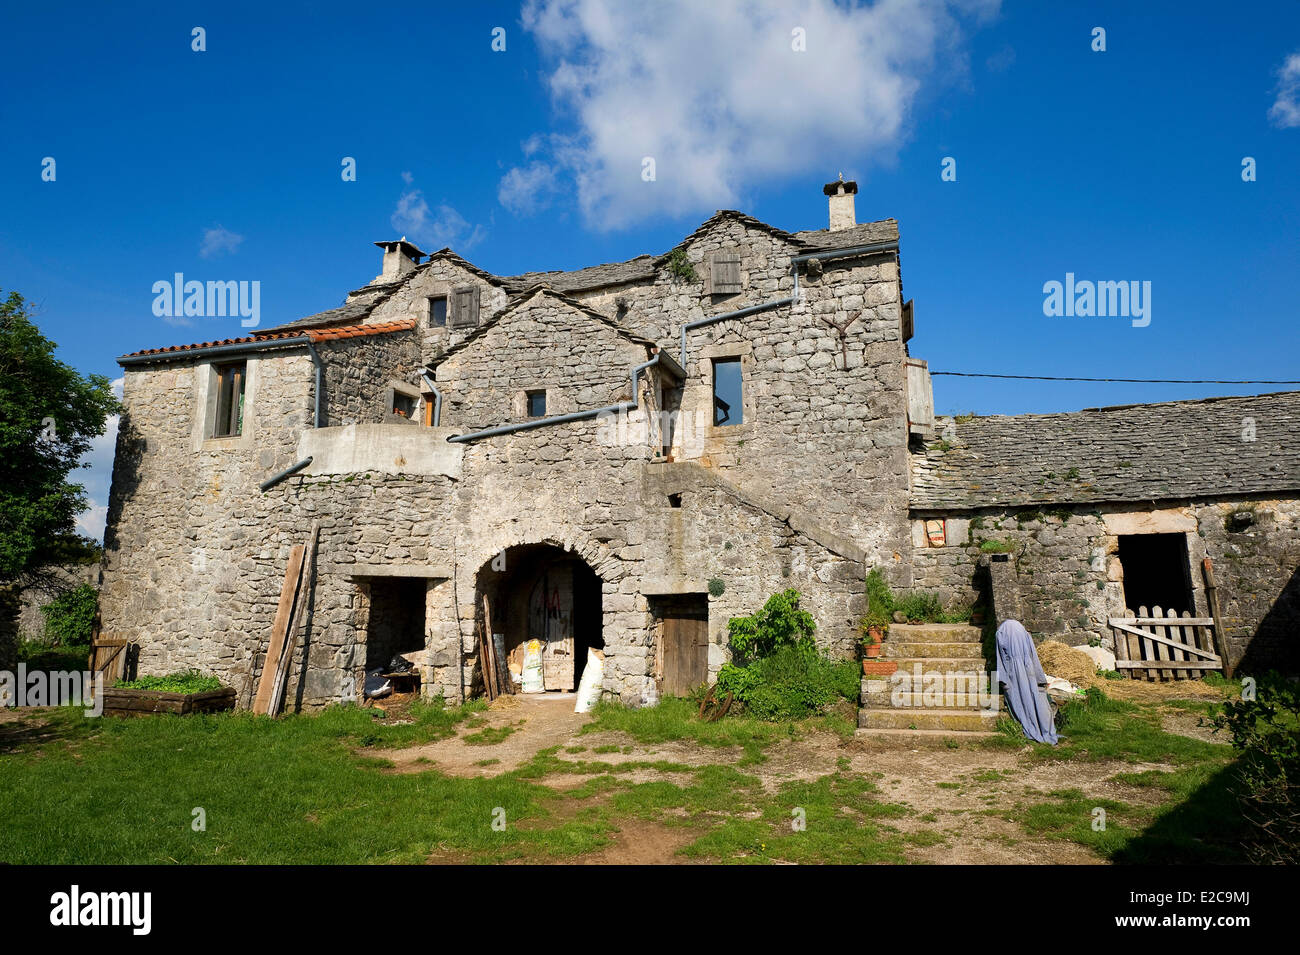 France, Aveyron, Saint Martin du Larzac, plateau of Larzac, sheep farm of Chantal Alvergnas and Thomas Lesay - Stock Image